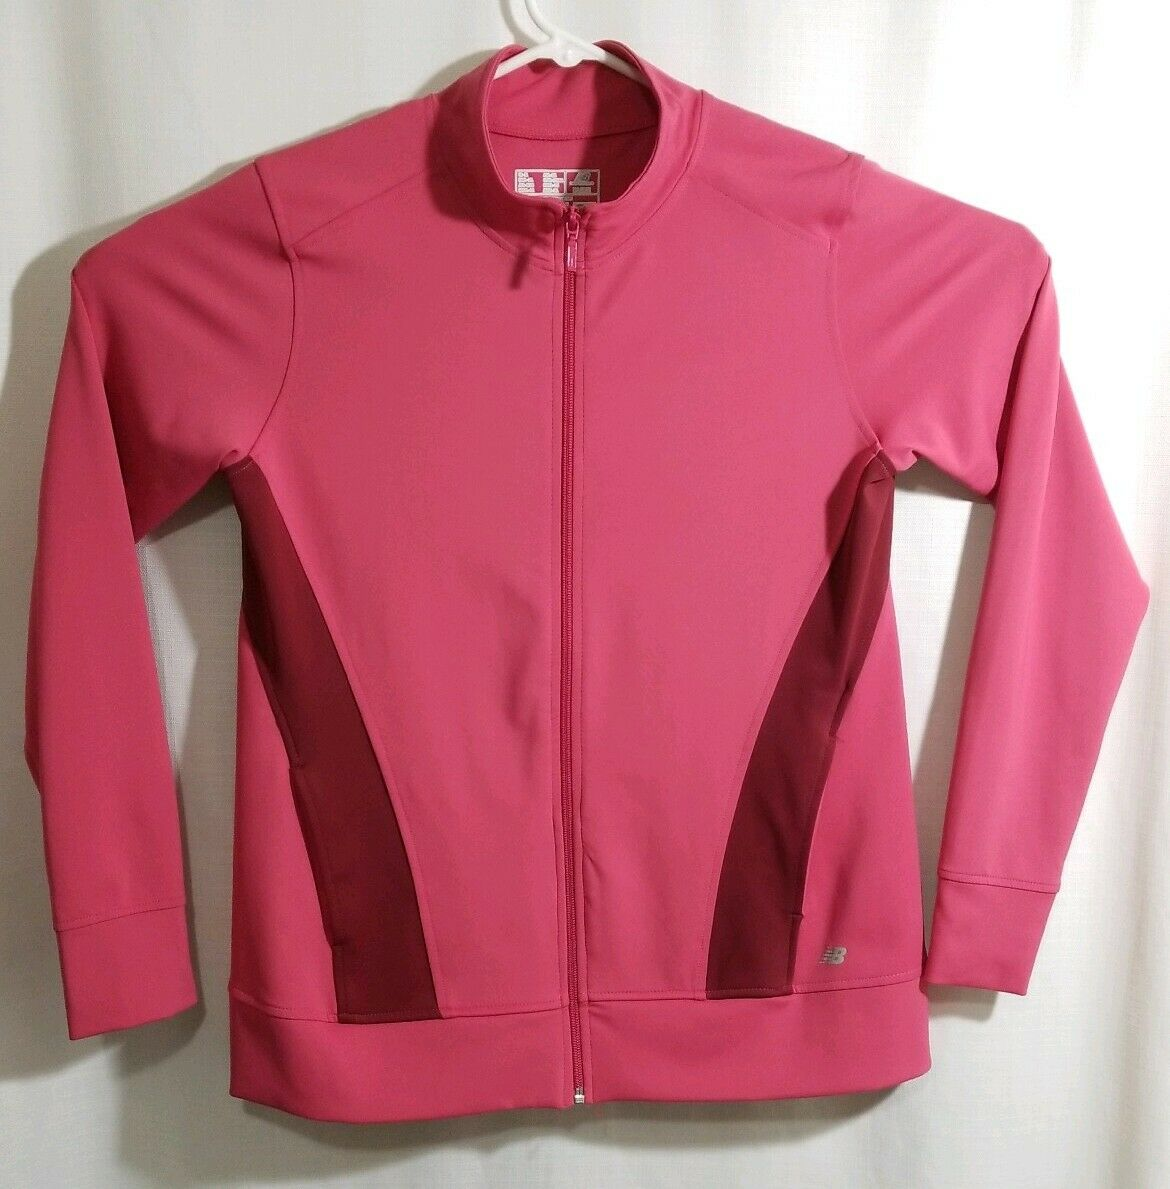 NEW BALANCE Womens Polyester Spandex Top Jacket, Coat, Size XL, Pink and Purple